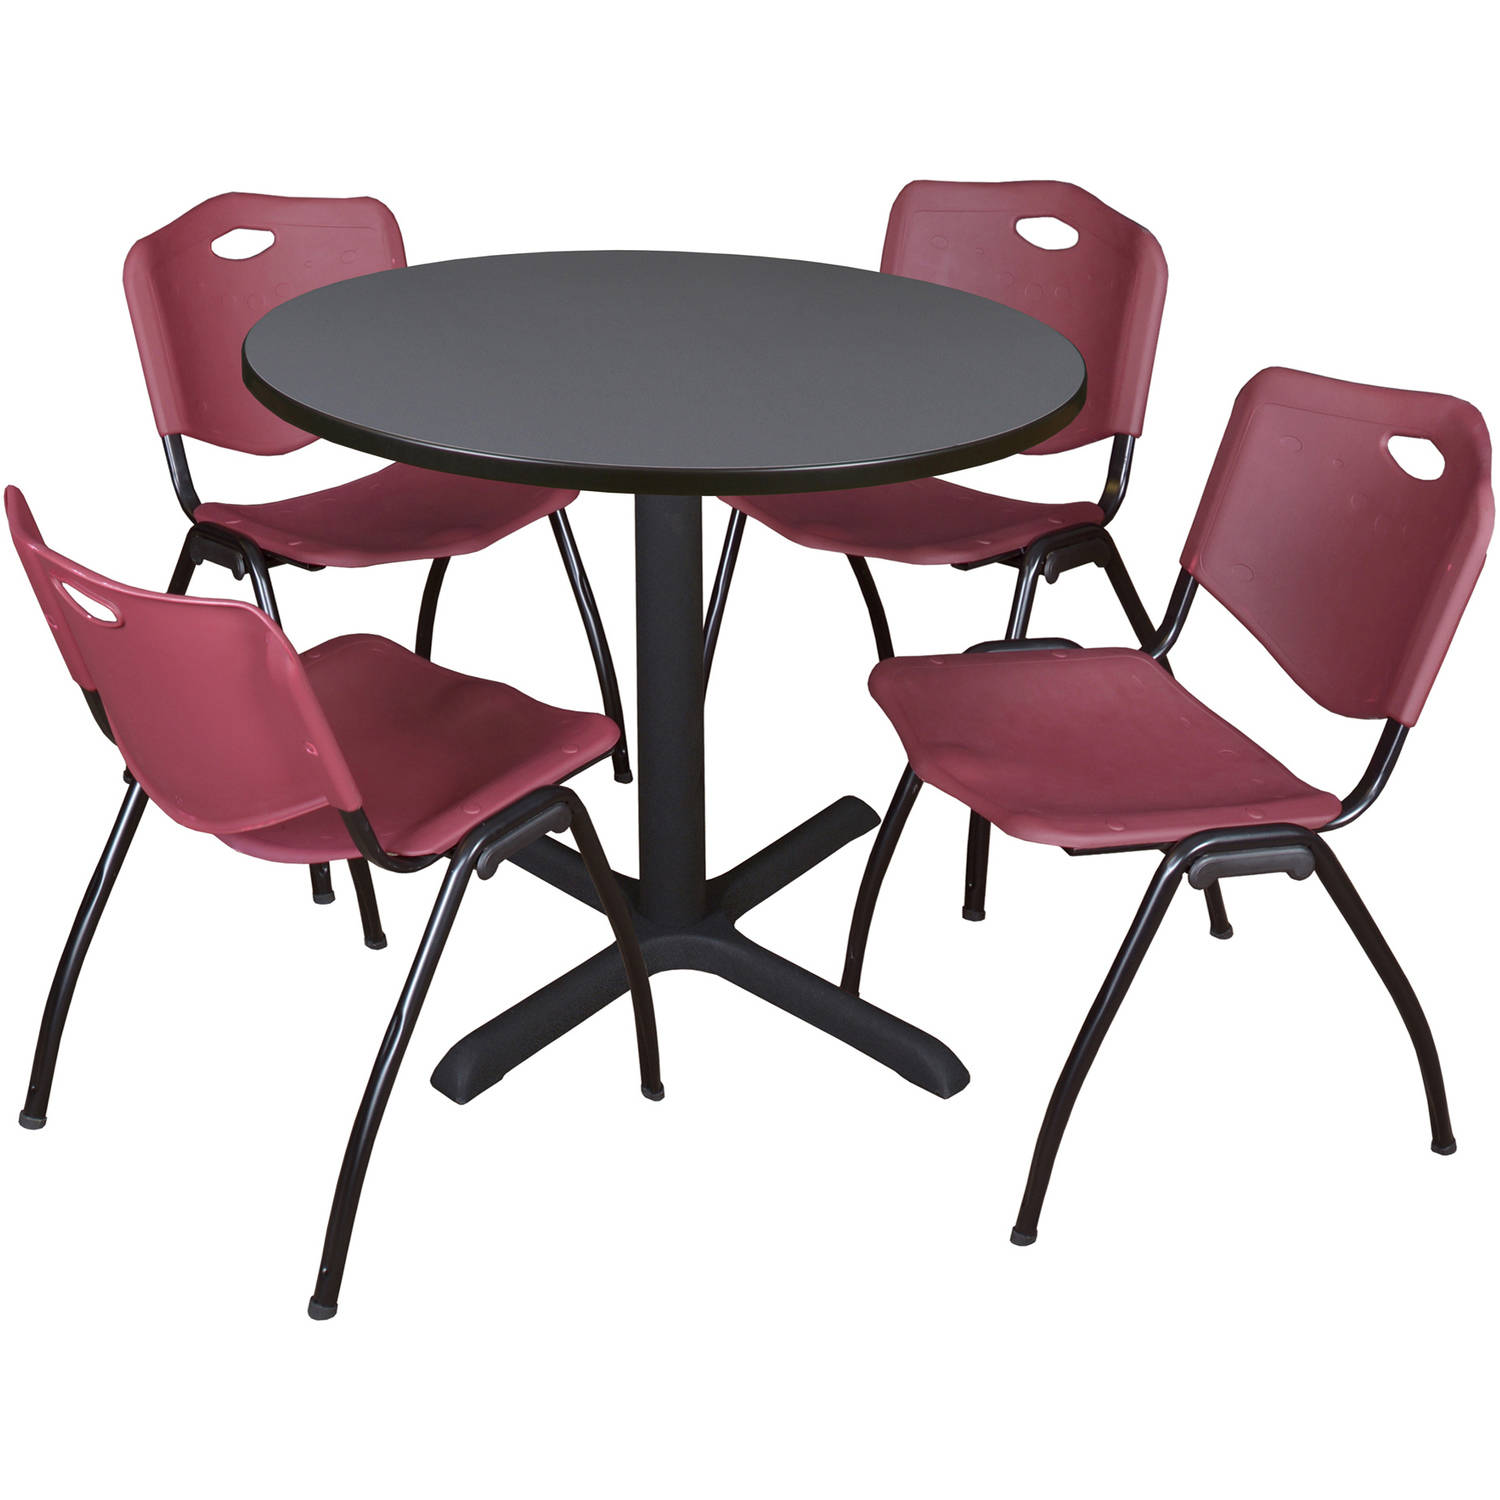 "Cain 36"" Grey Round Breakroom Table and 4 'M' Stack Chairs, Multiple Colors"